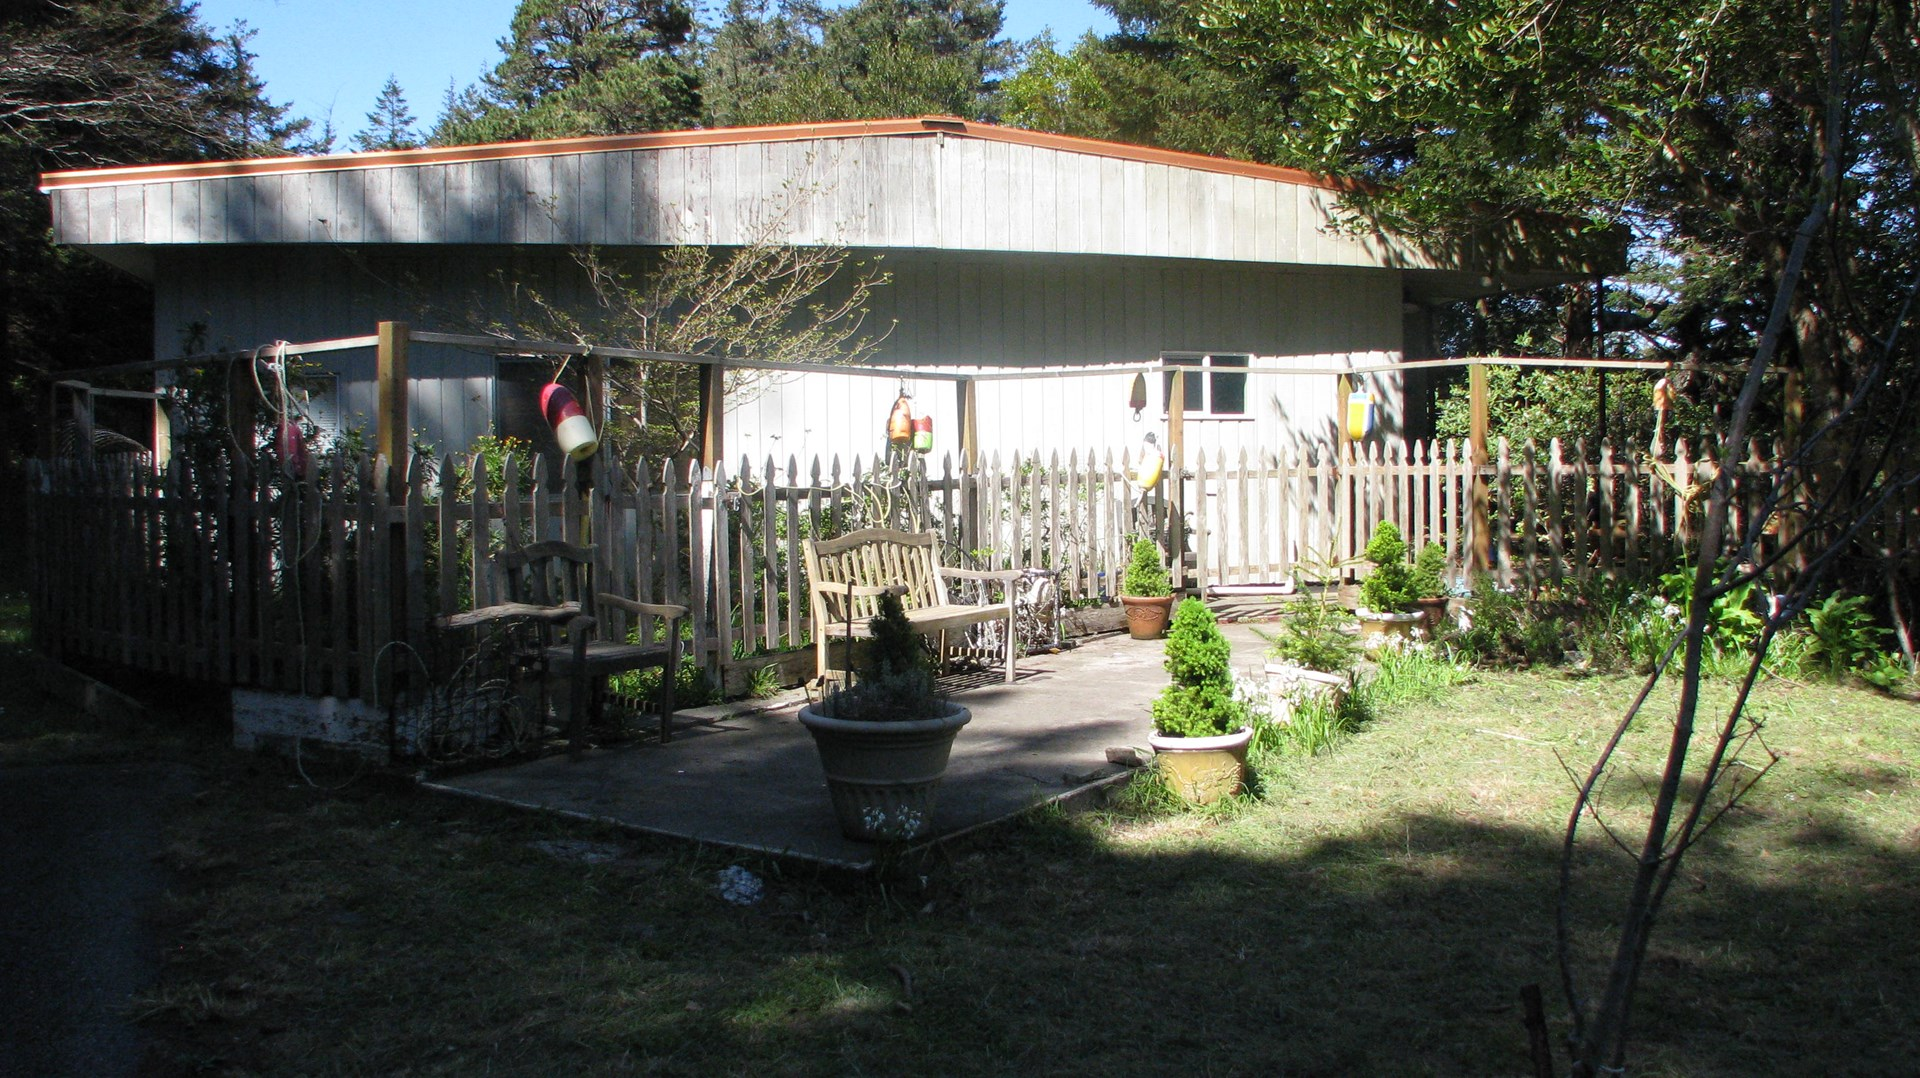 Home for sale in Port Orford, Oregon minutes to beach